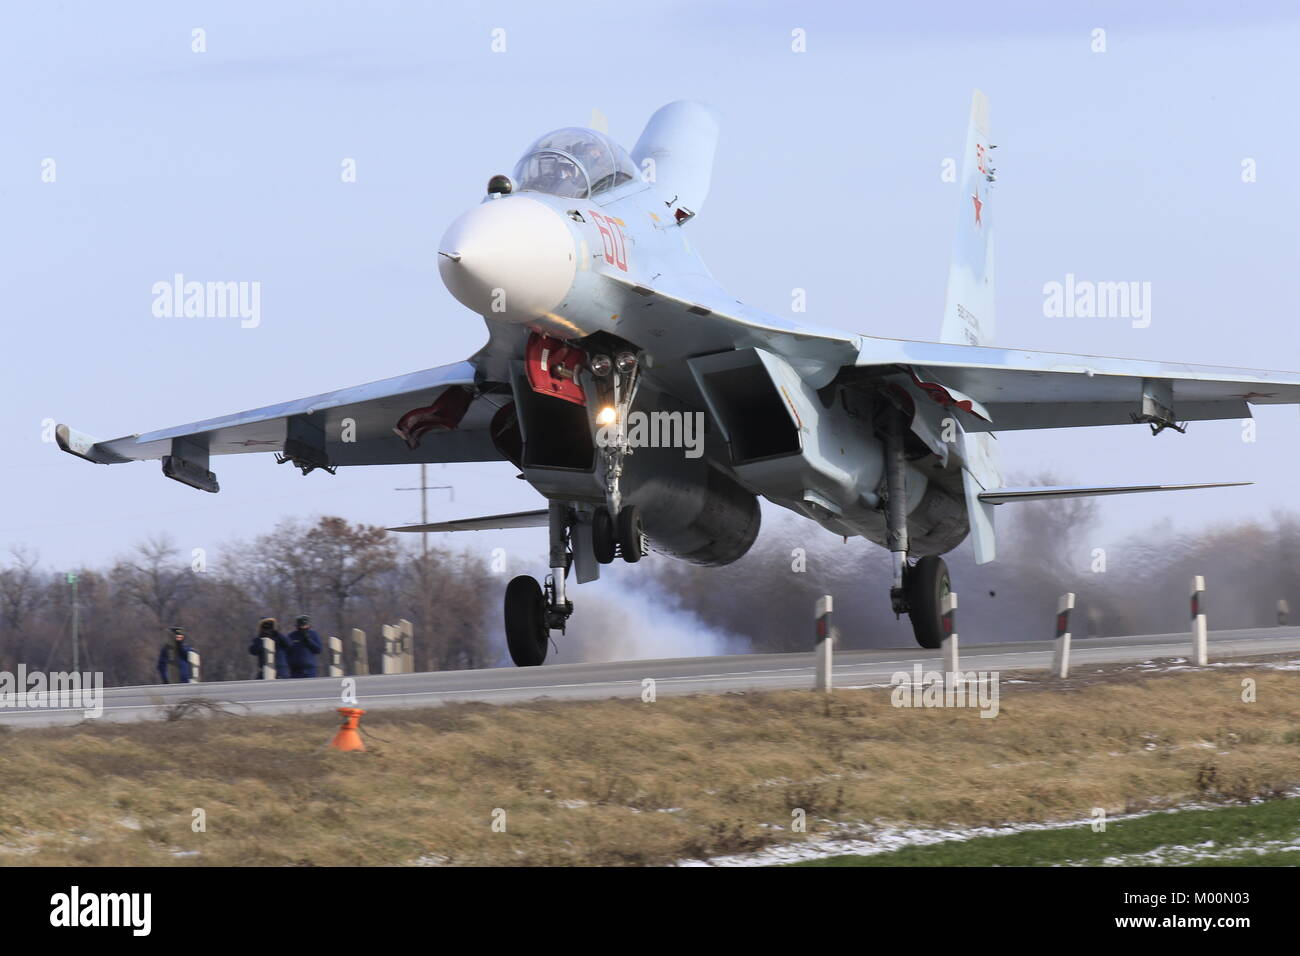 Flight incident with a Su-34 bomber in Khurba 68